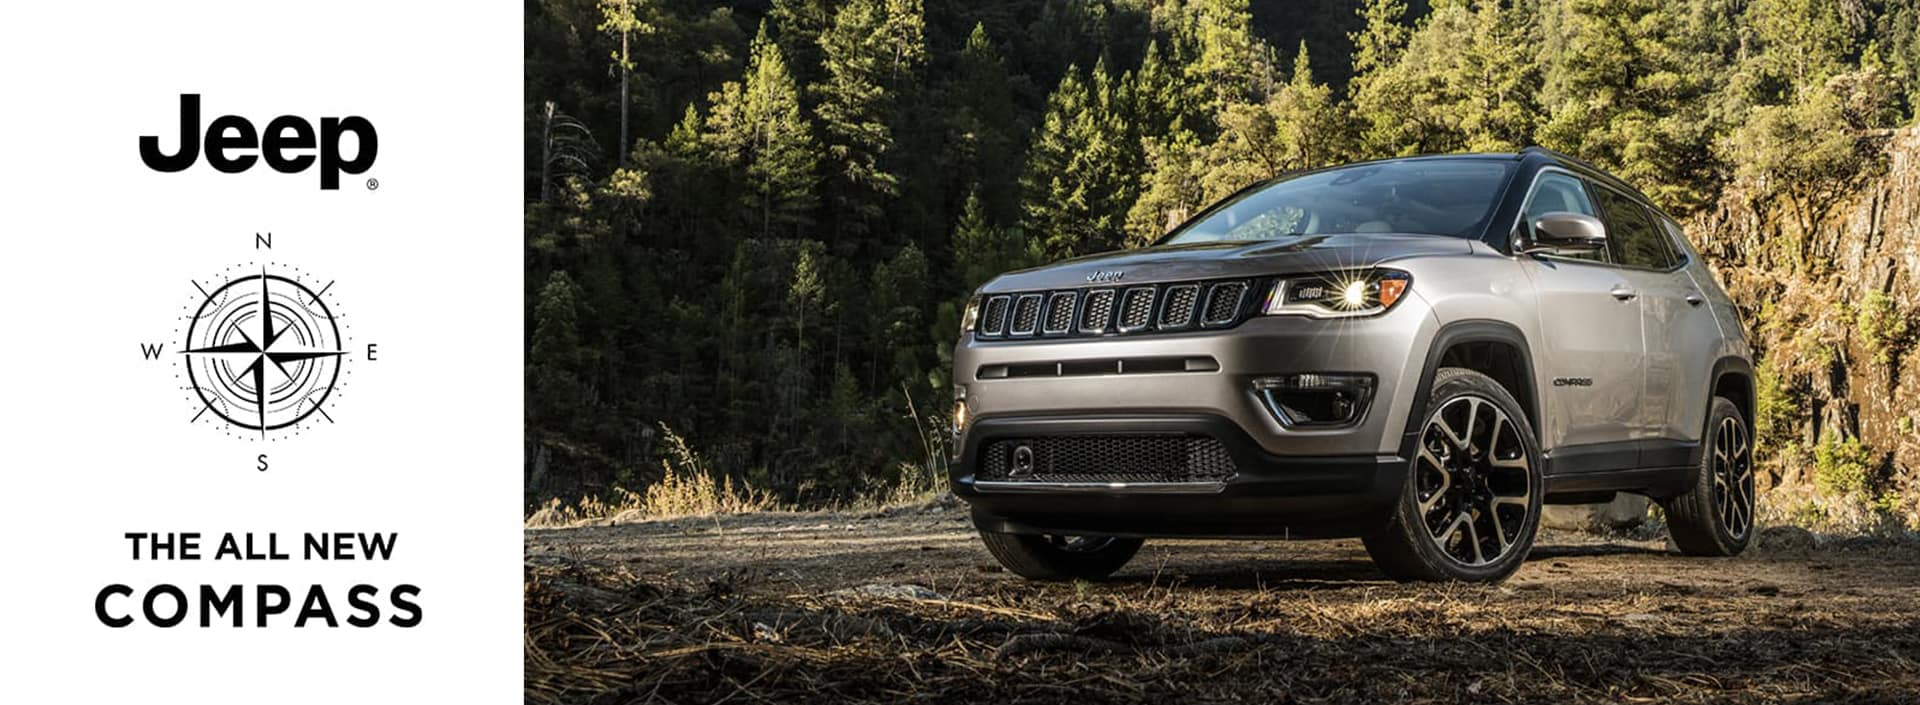 jeep-banner